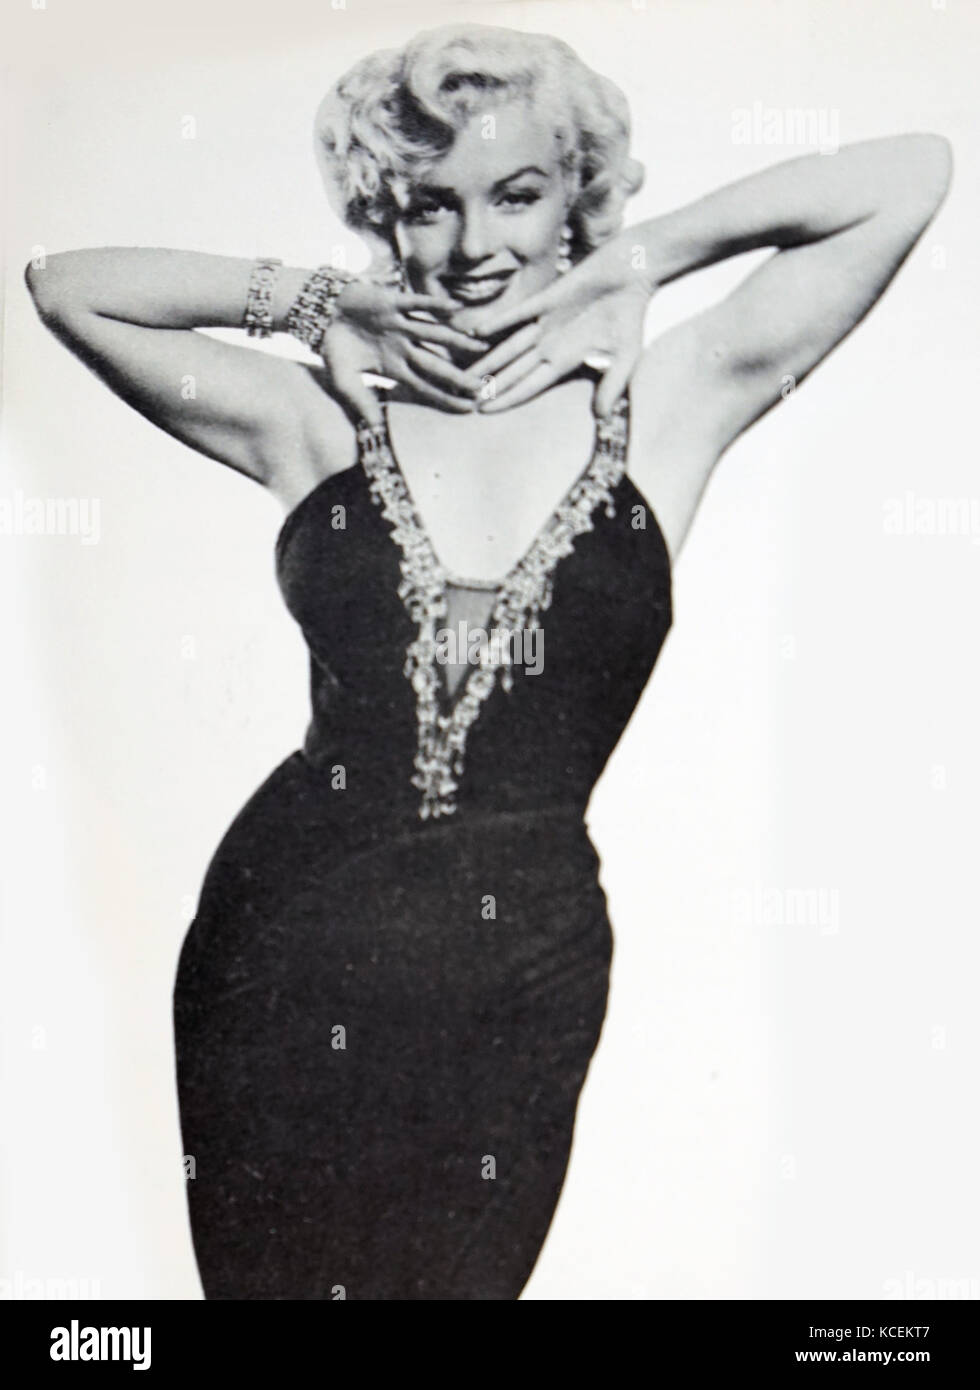 Photograph of Marilyn Monroe (1926-1962) an American actress, singer and model. Dated 20th Century - Stock Image